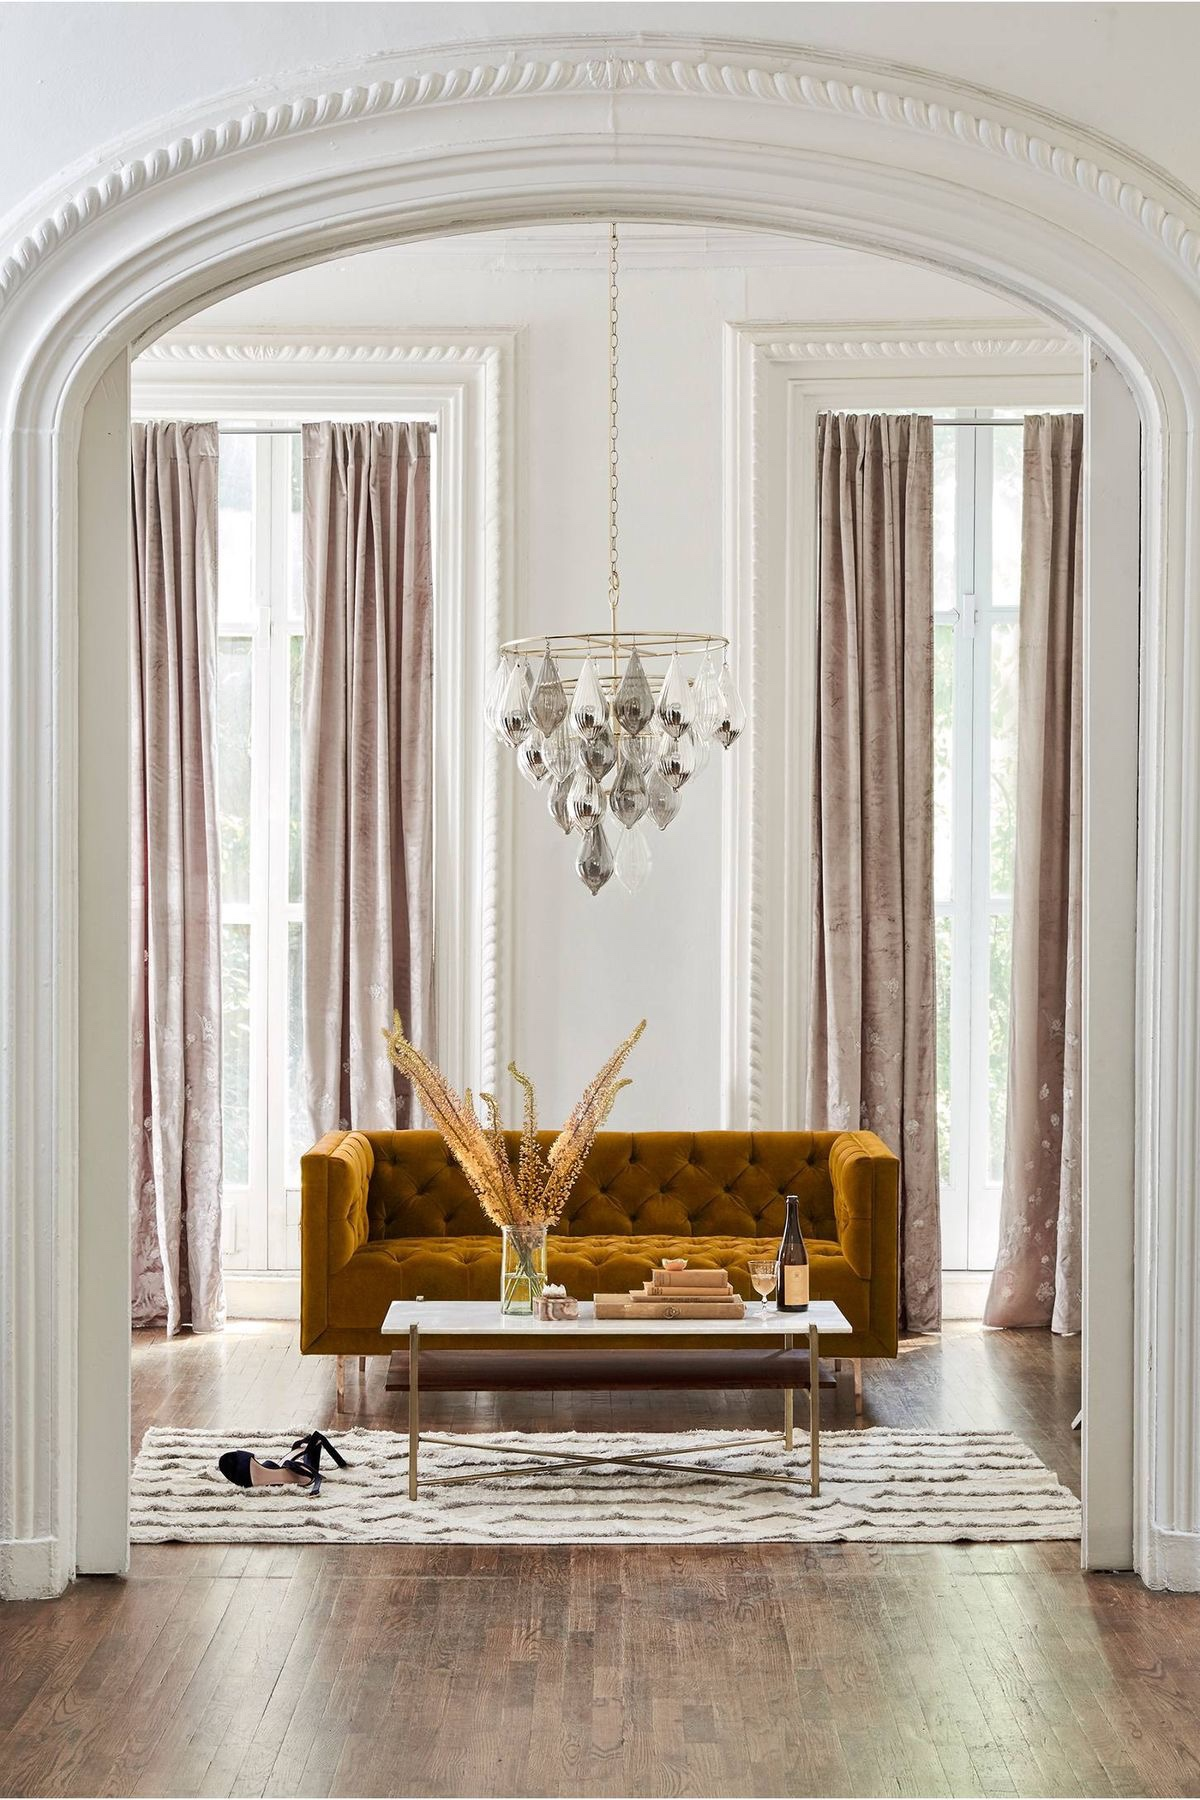 Velvet, marble, glass, brass, textured florals, a woven rug. Even minimalist designs require variety to become interesting.    Courtesy of Pinterest